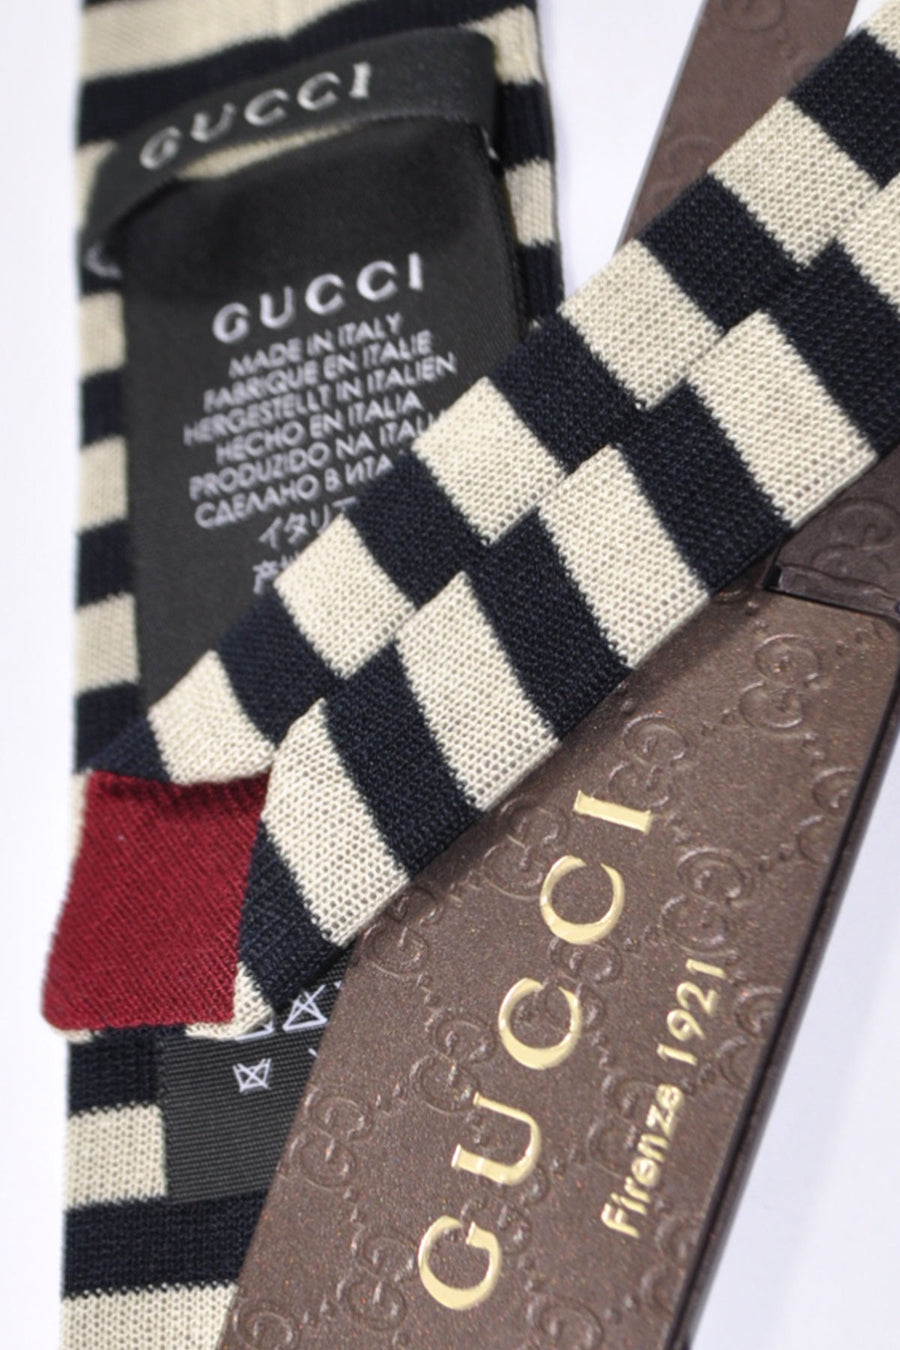 Gucci Tie White Silver Black Stripes New 2015 / 2016 Collection